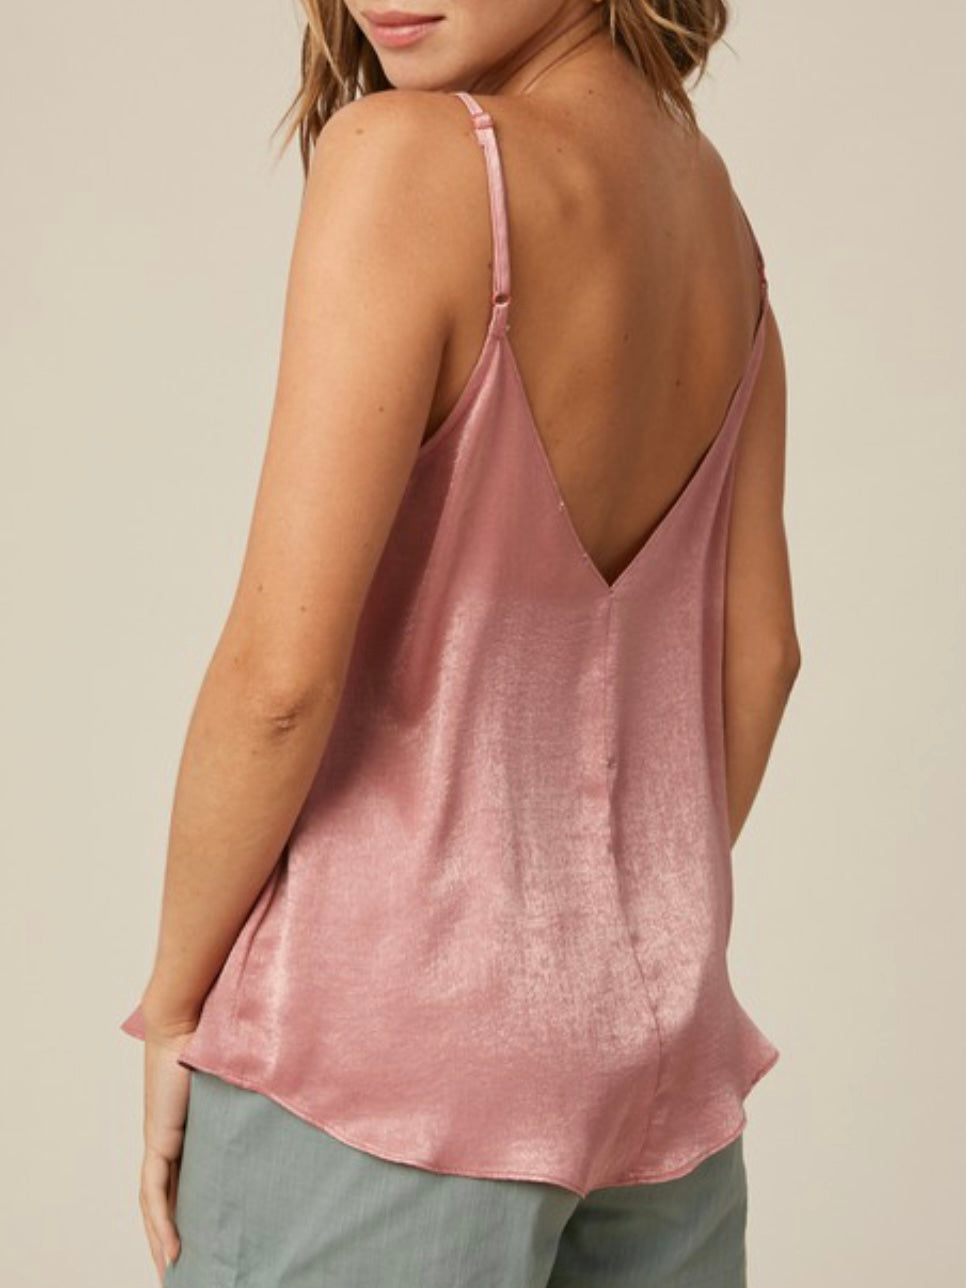 WITH MY WHOLE HEART - PINK VNECK LACE TRIM CAMI